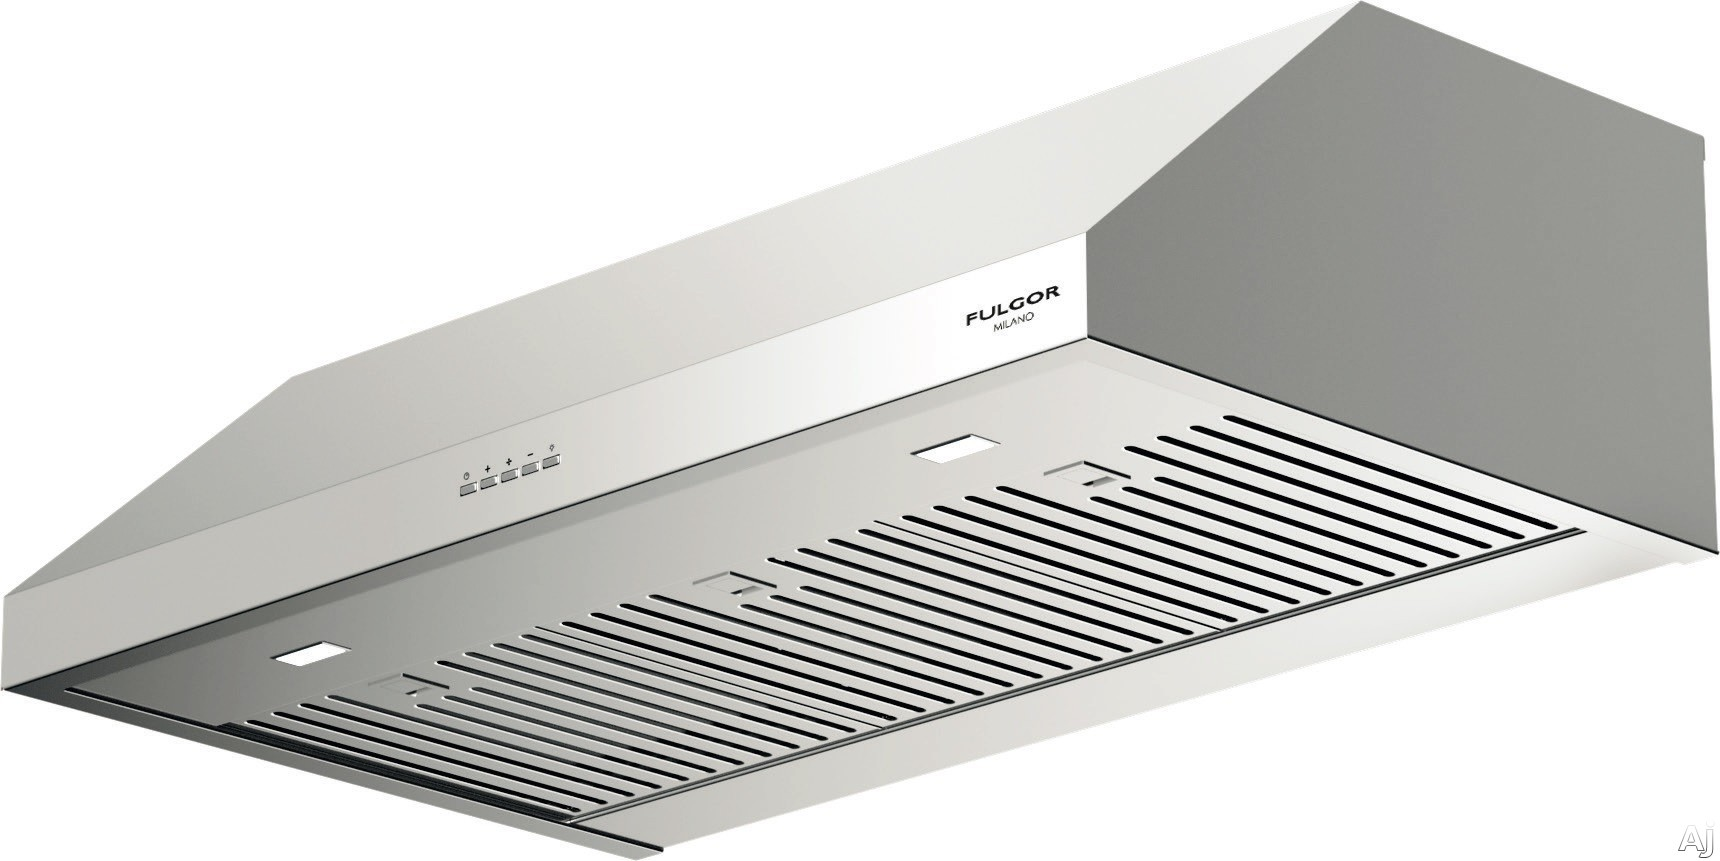 Fulgor Milano F4UC36S1 36 Inch Under Cabinet Hood with 450 CFM Internal Blower Stainless Steel Baffle Filters Mechanical Controls 4 Speed Blower Fan LED Lighting and Recirculating Options